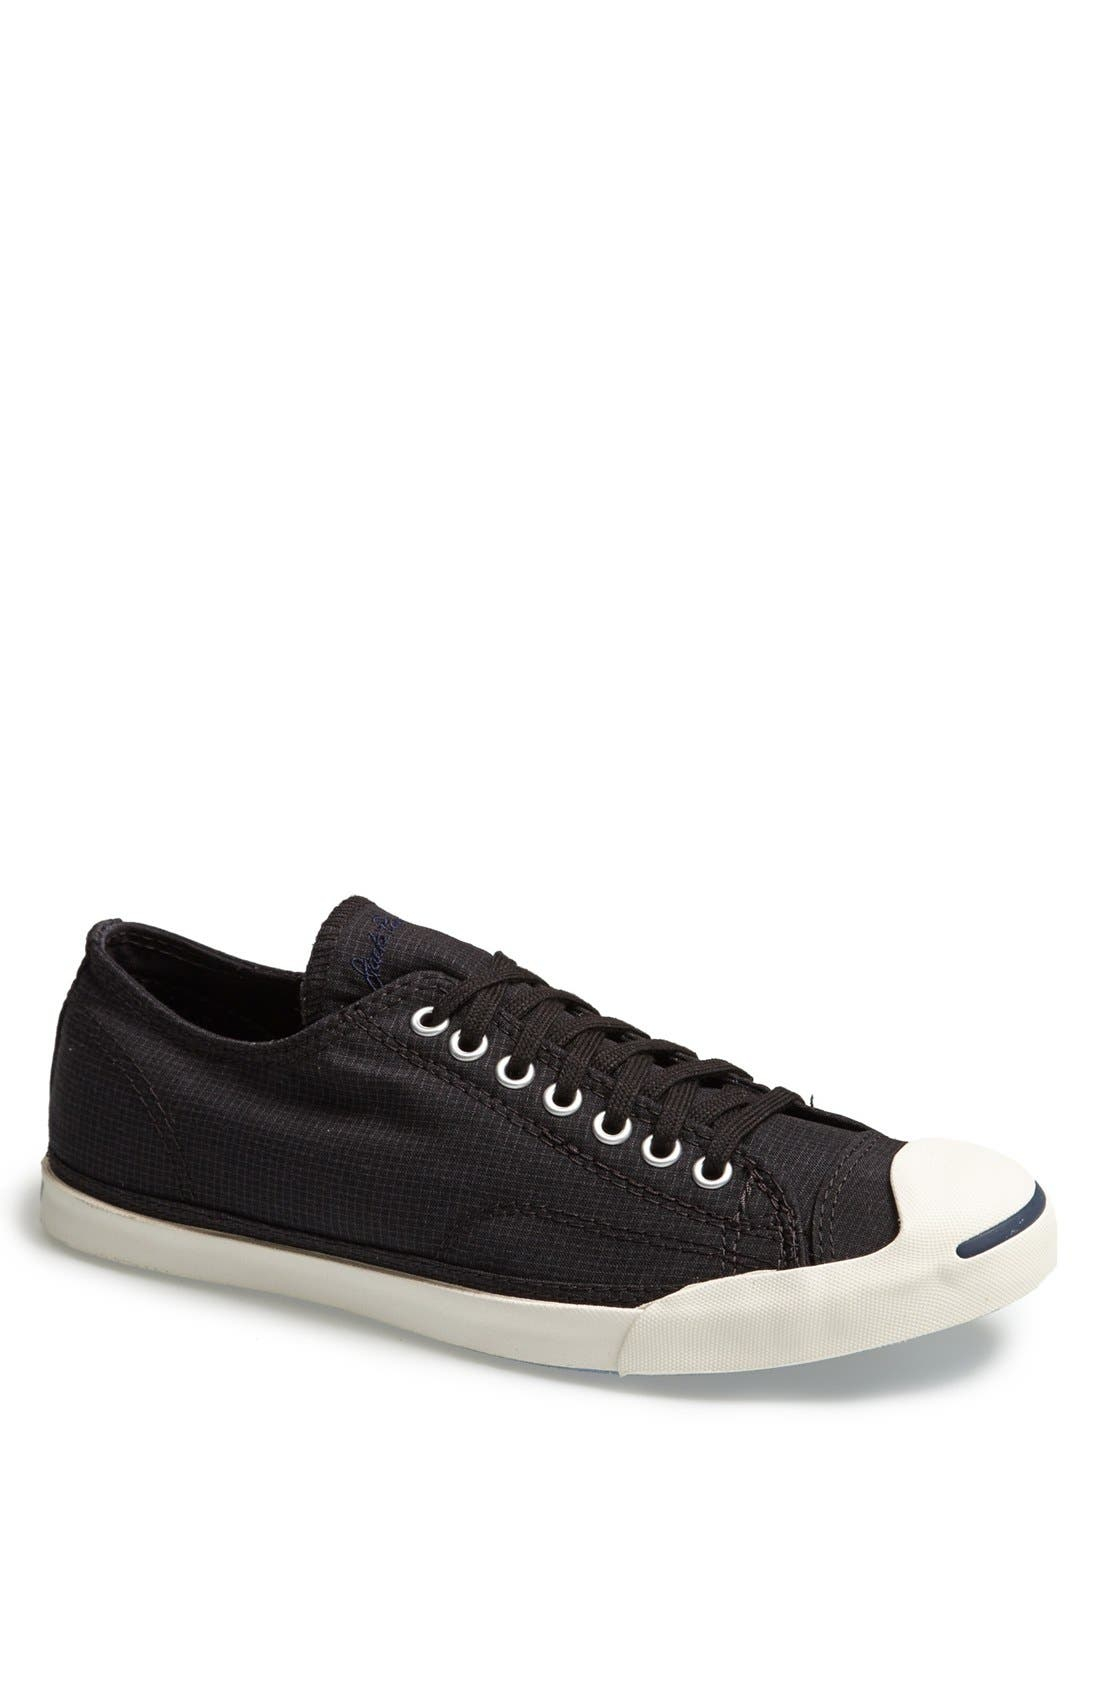 Main Image - Converse 'Jack Purcell - Low' Sneaker (Men)